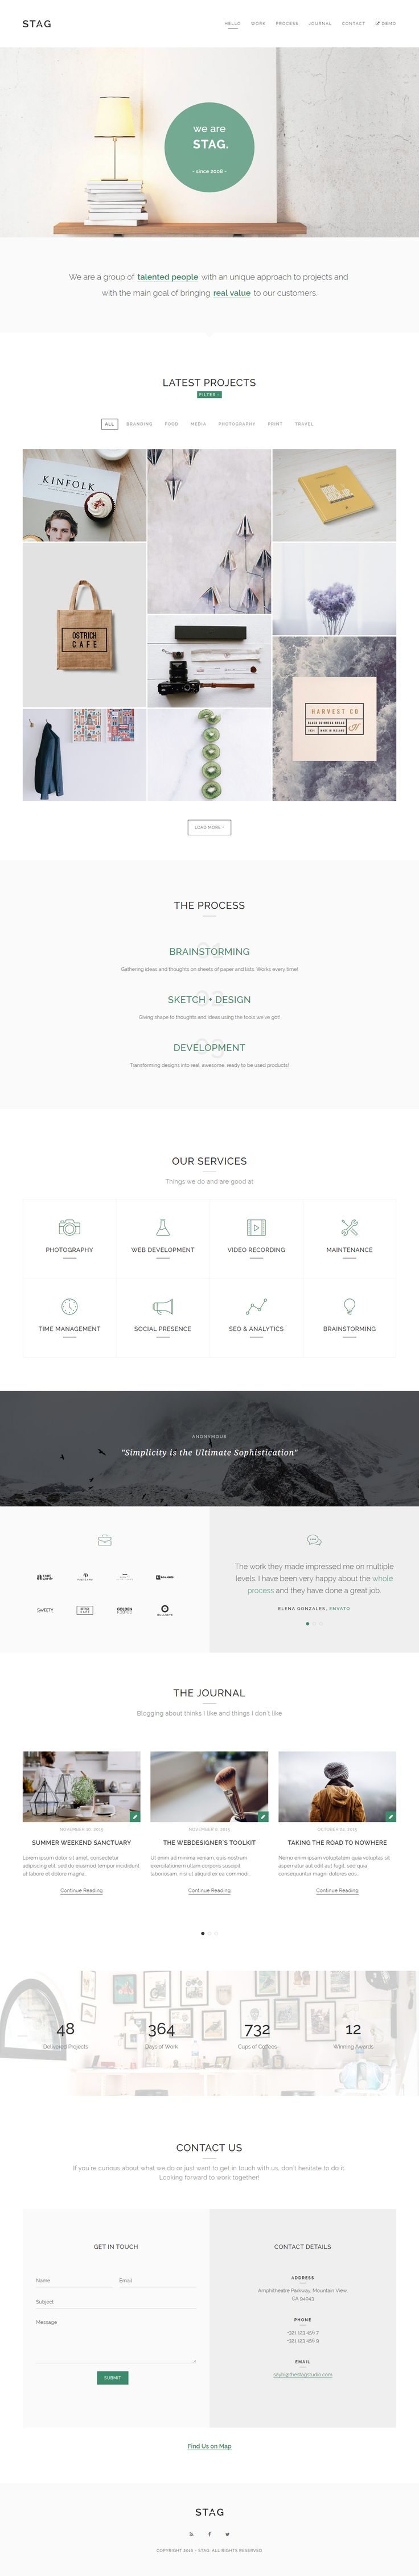 Stag is Premium full Responsive Parallax #WordPress Portfolio Theme. Visual Composer. WooCommerce. #MinimalDesign. #OnePage. Test free demo at: http://www.responsivemiracle.com/stag-premium-responsive-portfolio-wordpress-theme-freelancers-agencies/